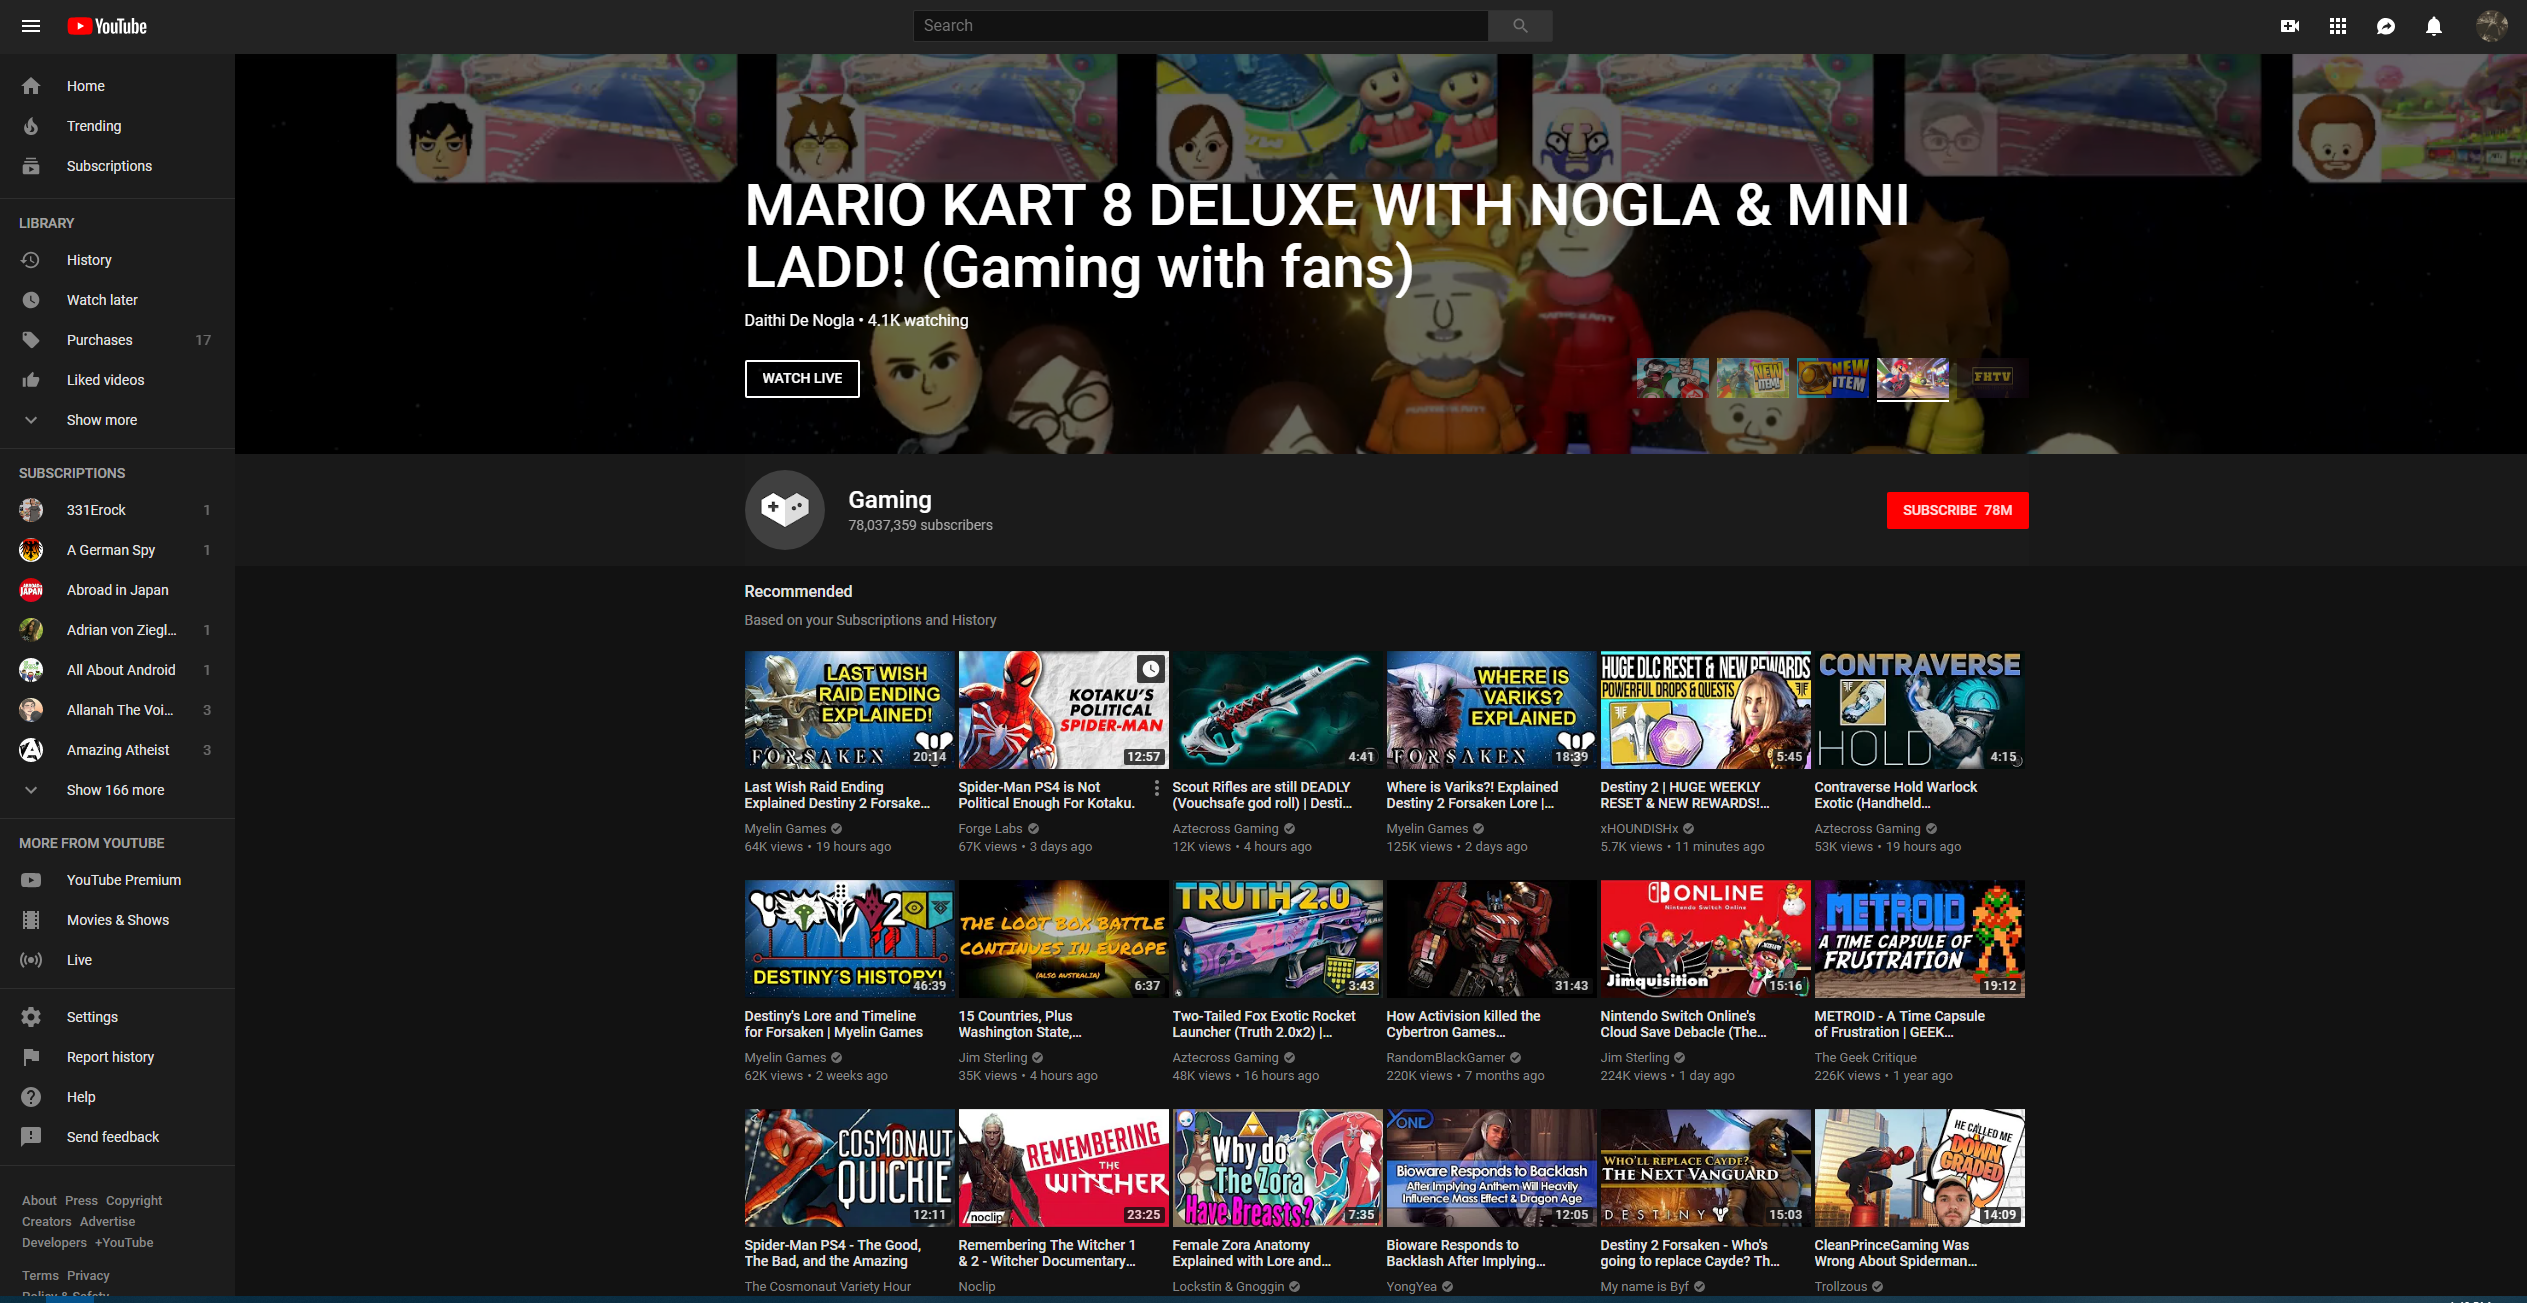 The YouTube Gaming app will be no more in March of 2019